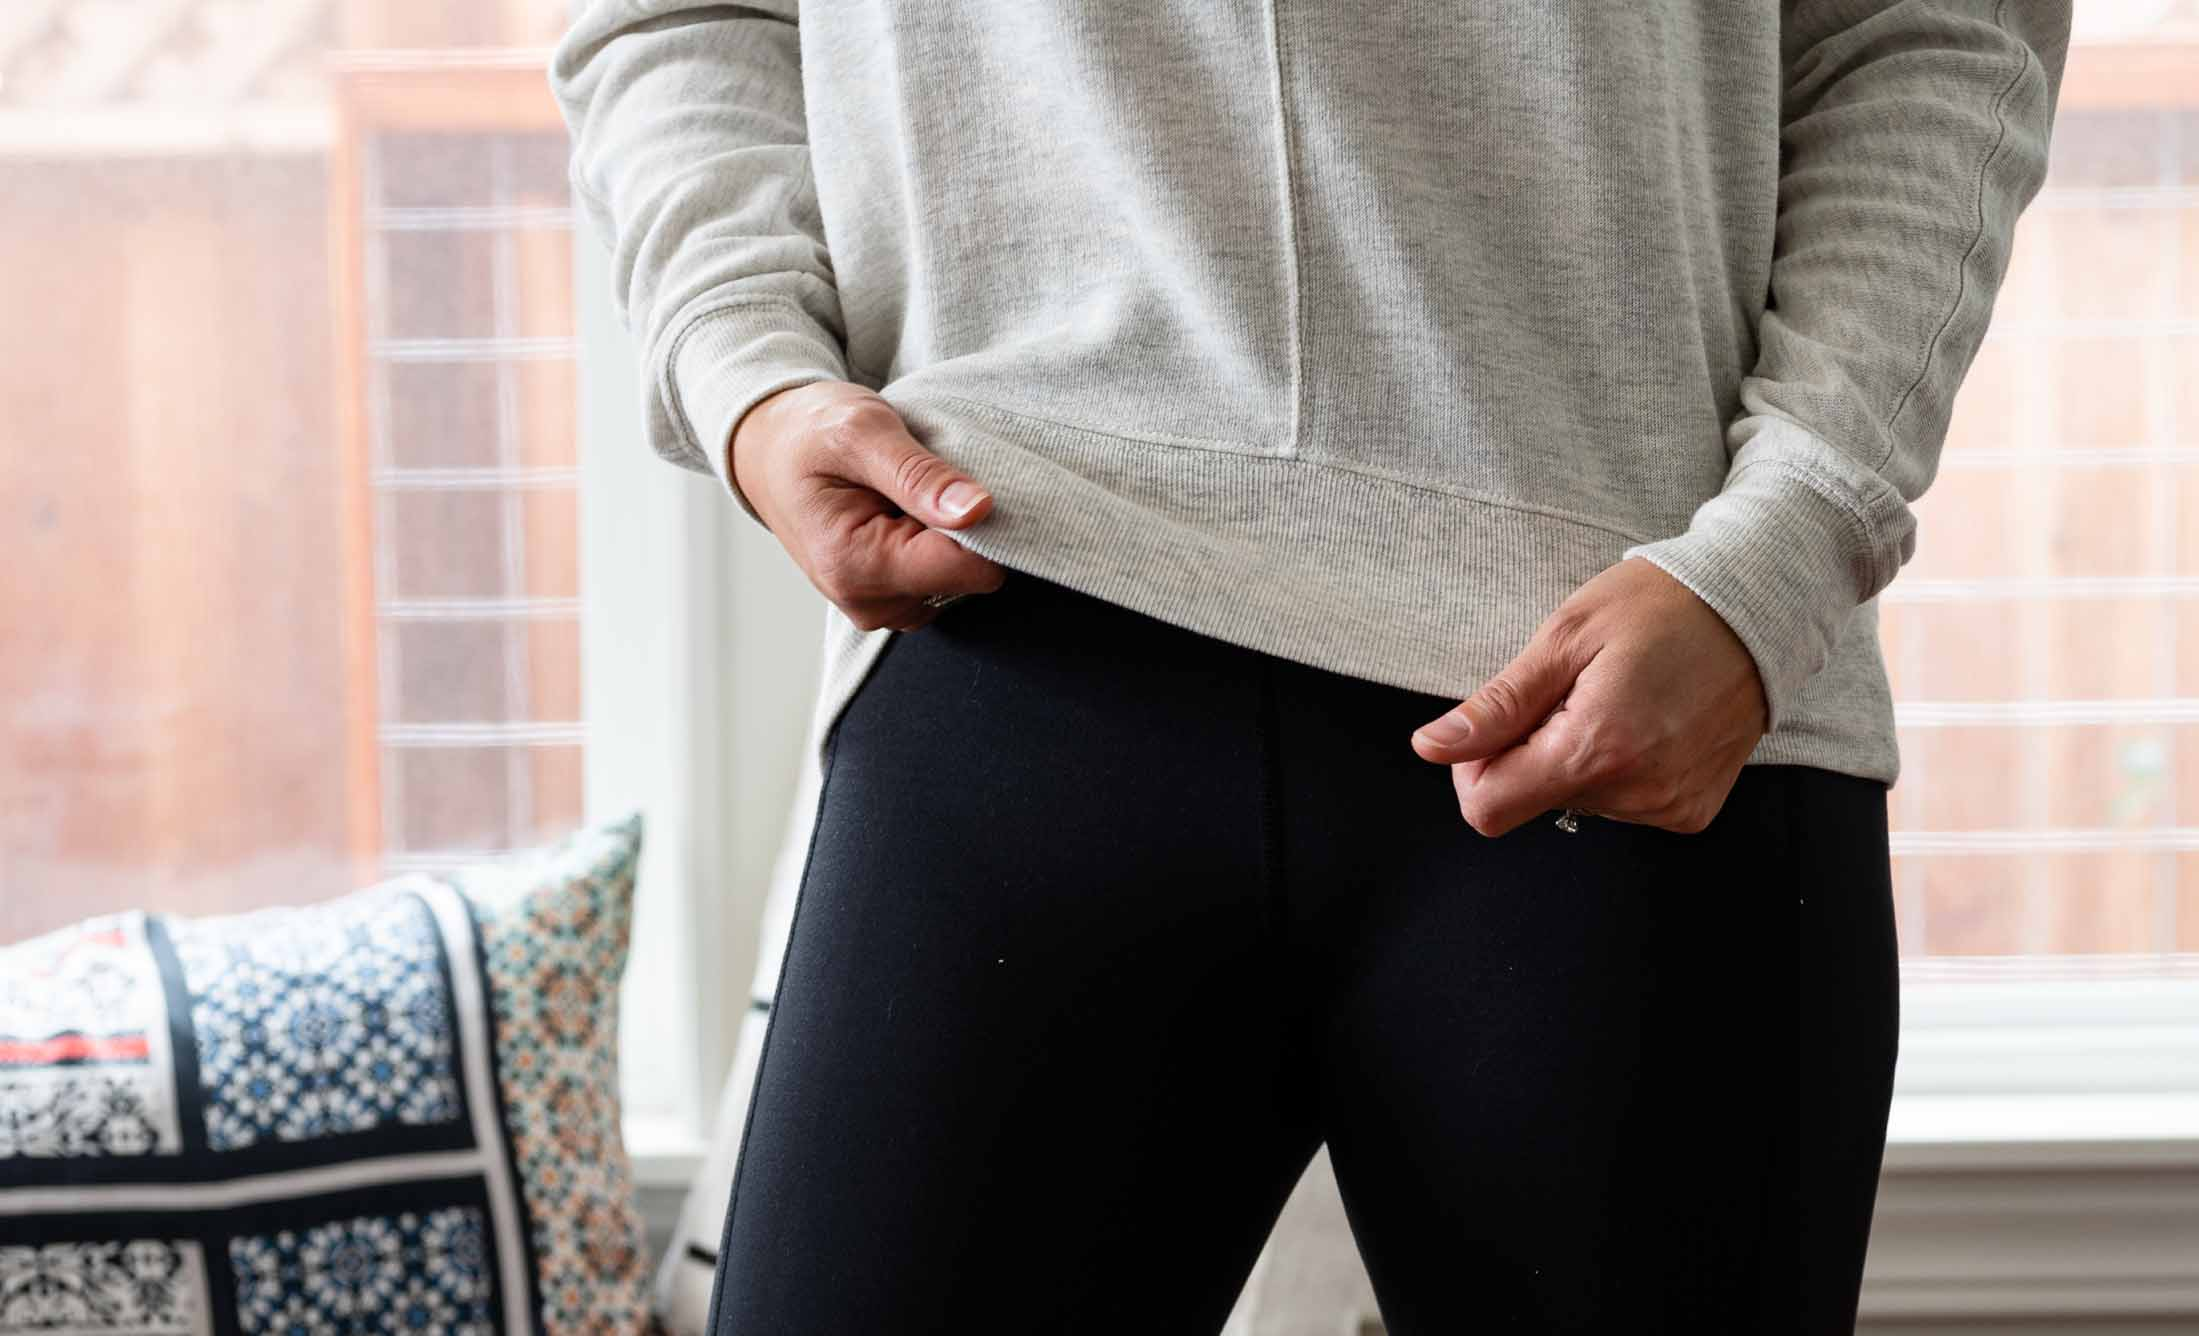 Introducing the best black leggings I've put on my body. (Not click-bait, the High Waist Cosy Tech leggings are legit.) Plus, more Zella pieces getting me through this holiday-at-home season.